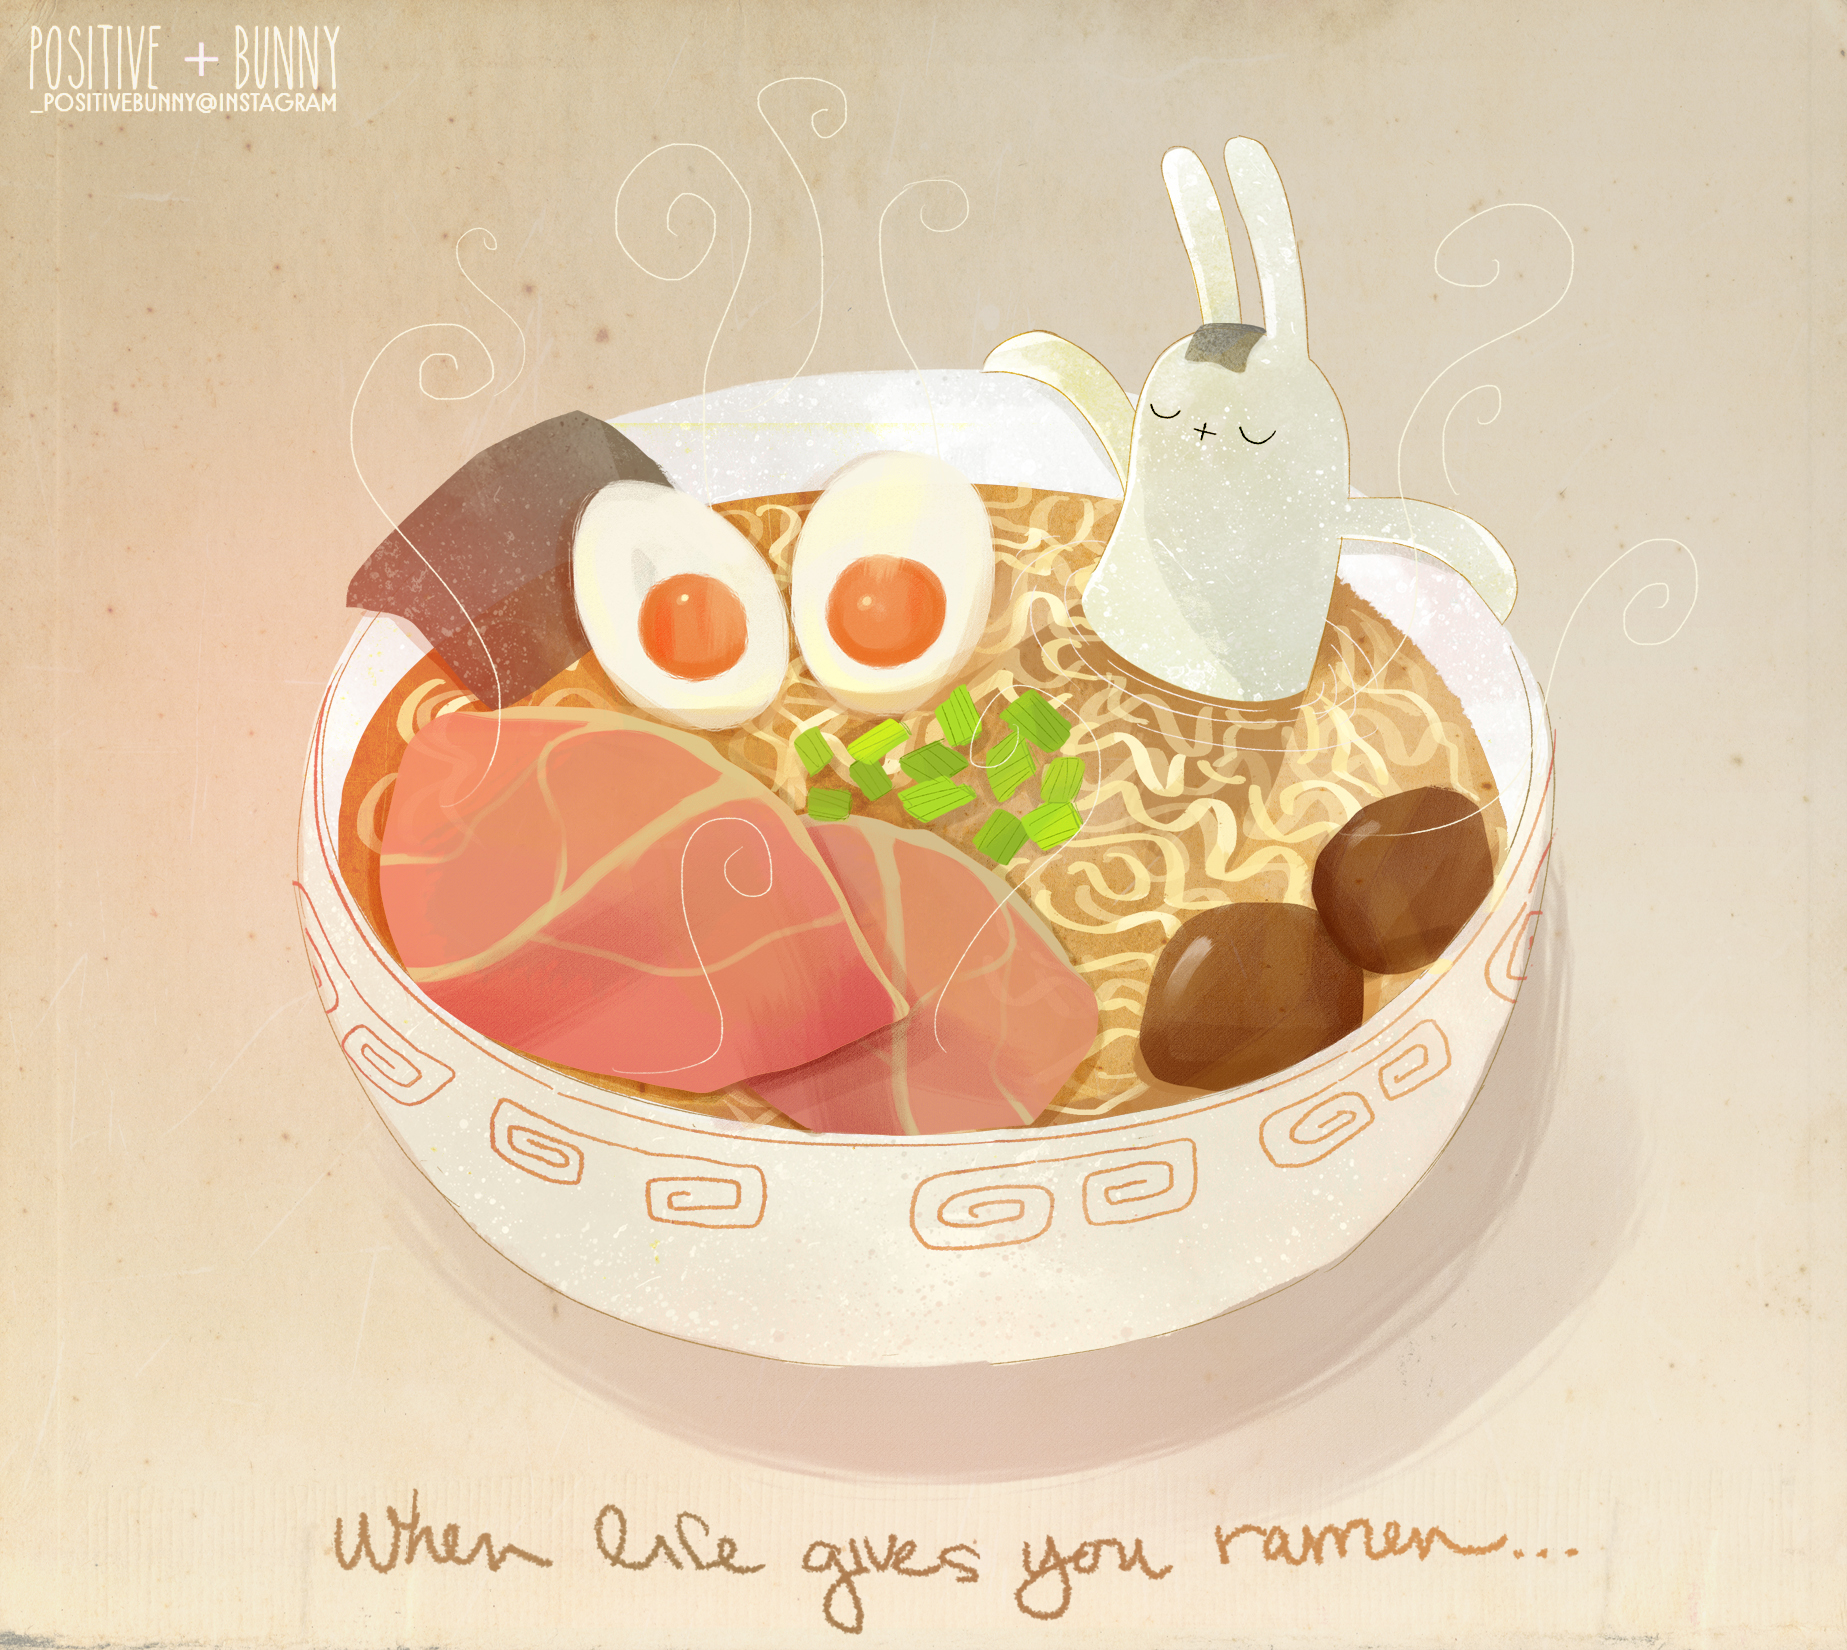 When life gives you ramen